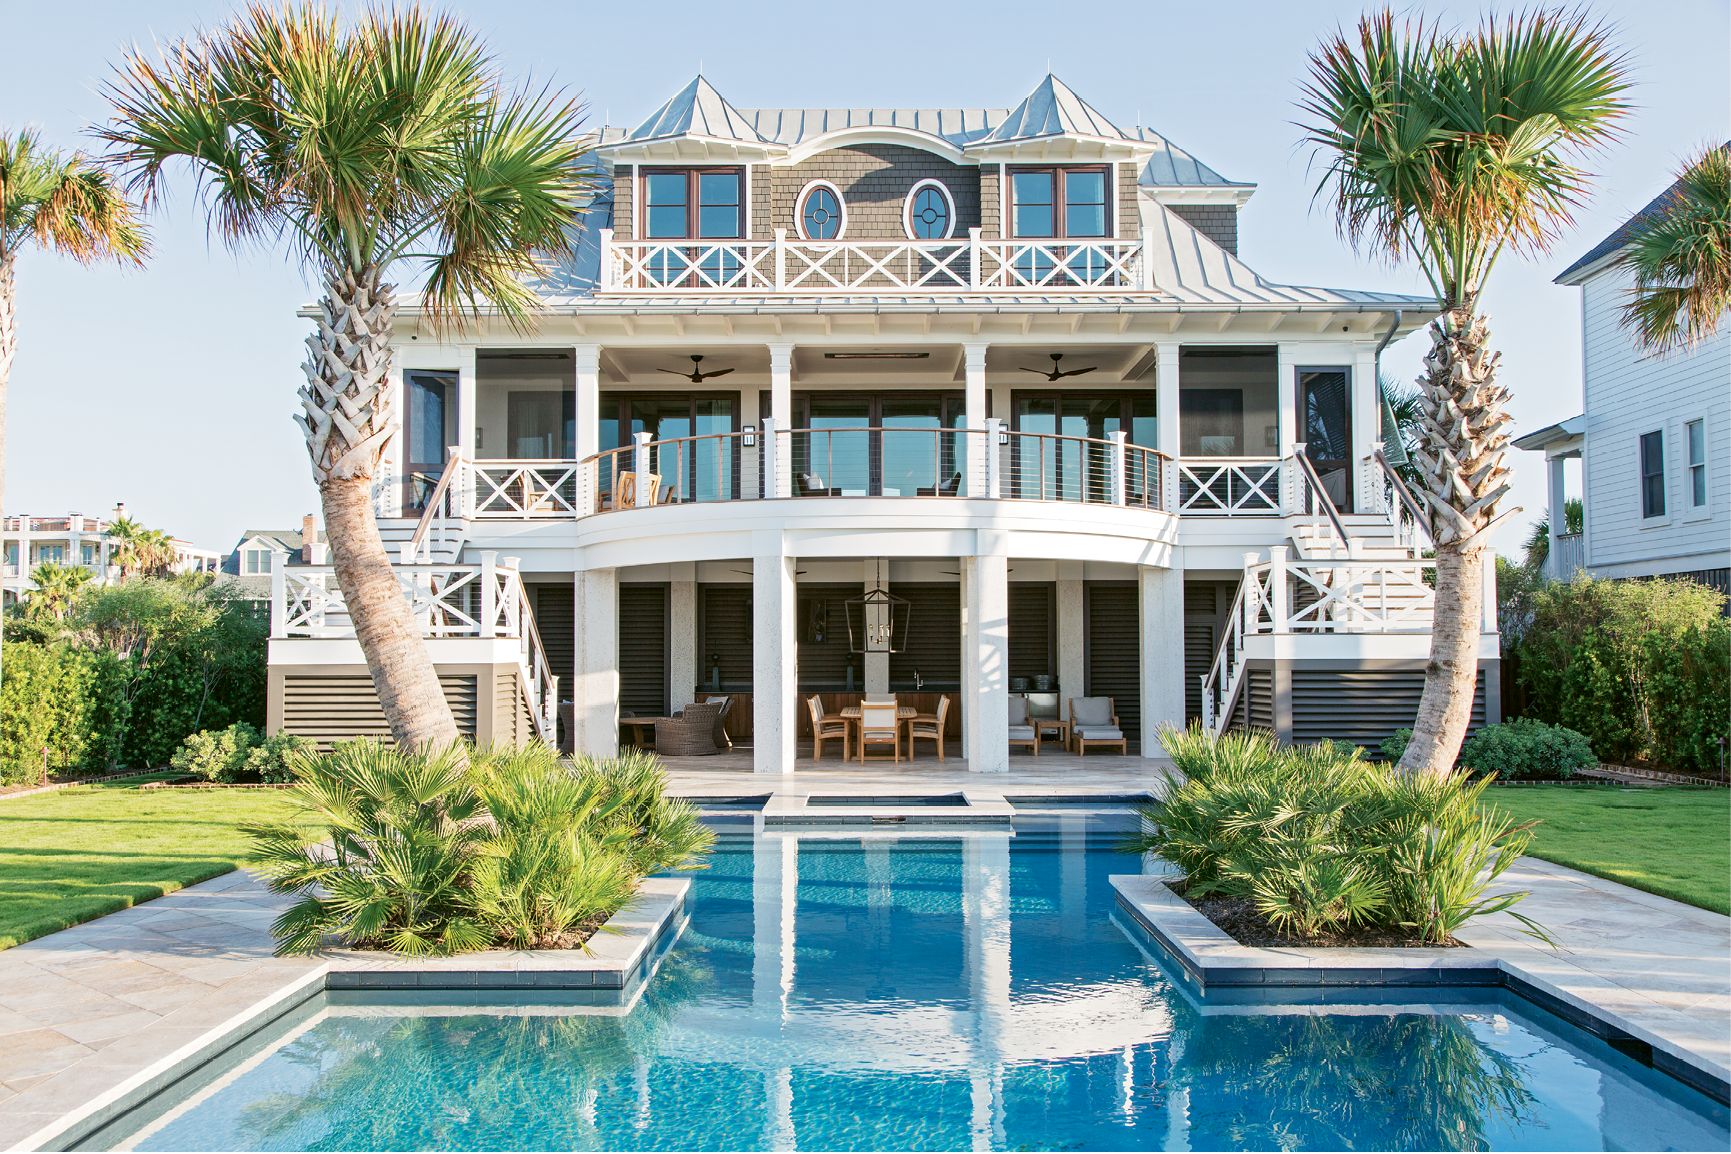 Beachside Oasis: Homeowners Mike and Mary Lamach worked with architect Steve Herlong and interior designer David Smith to conjure their vacation home; the symmetrical design is influenced by both Caribbean and Lowcountry architecture.